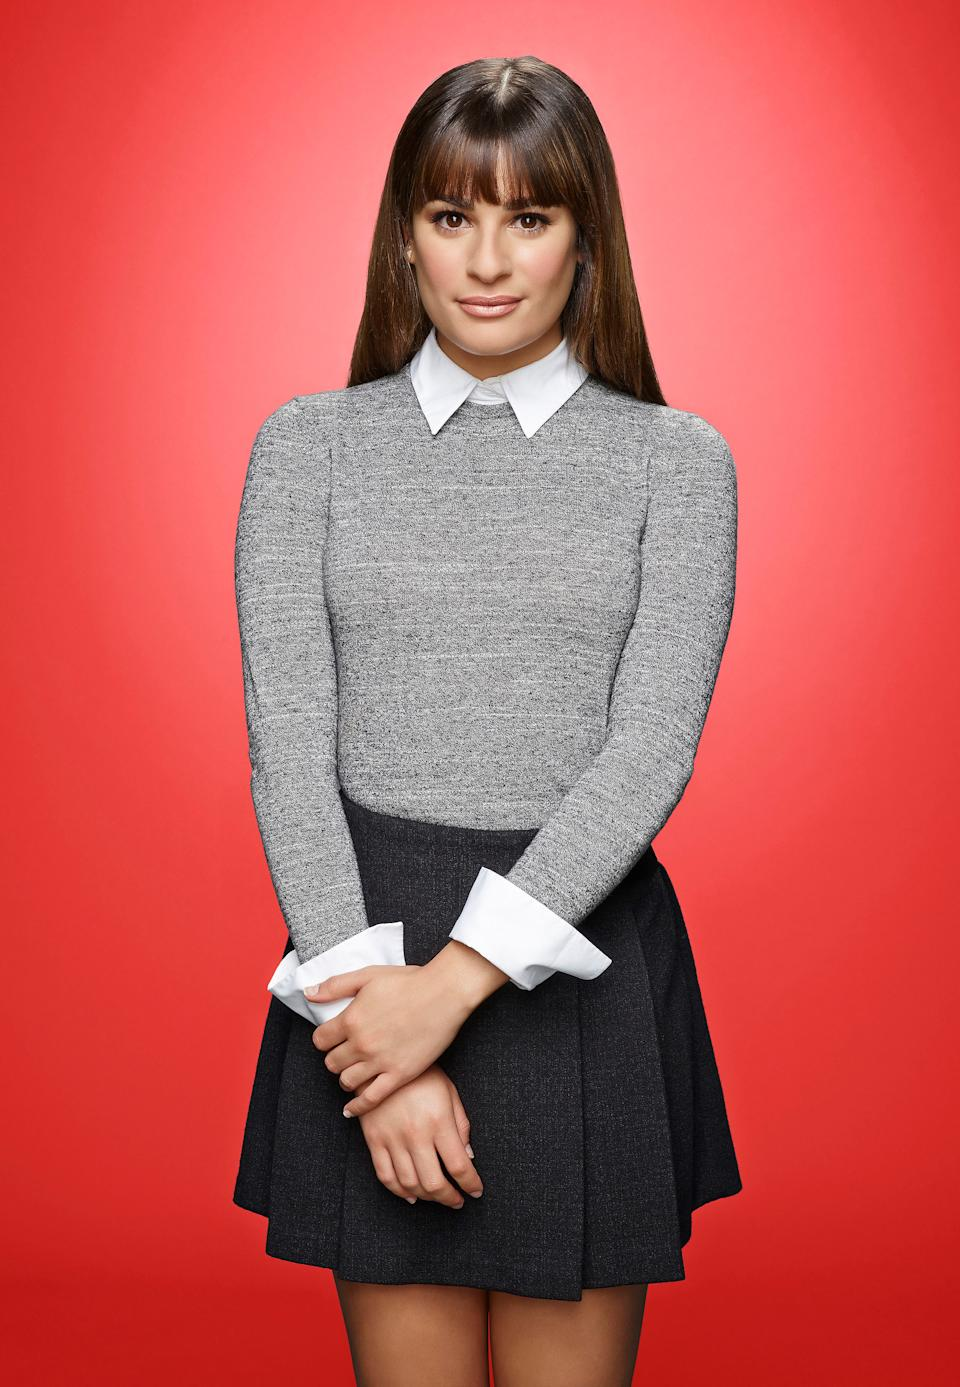 Lea Michele as Rachel on the sixth and final season of GLEE premiering with a special two-hour event  Friday, Jan. 9